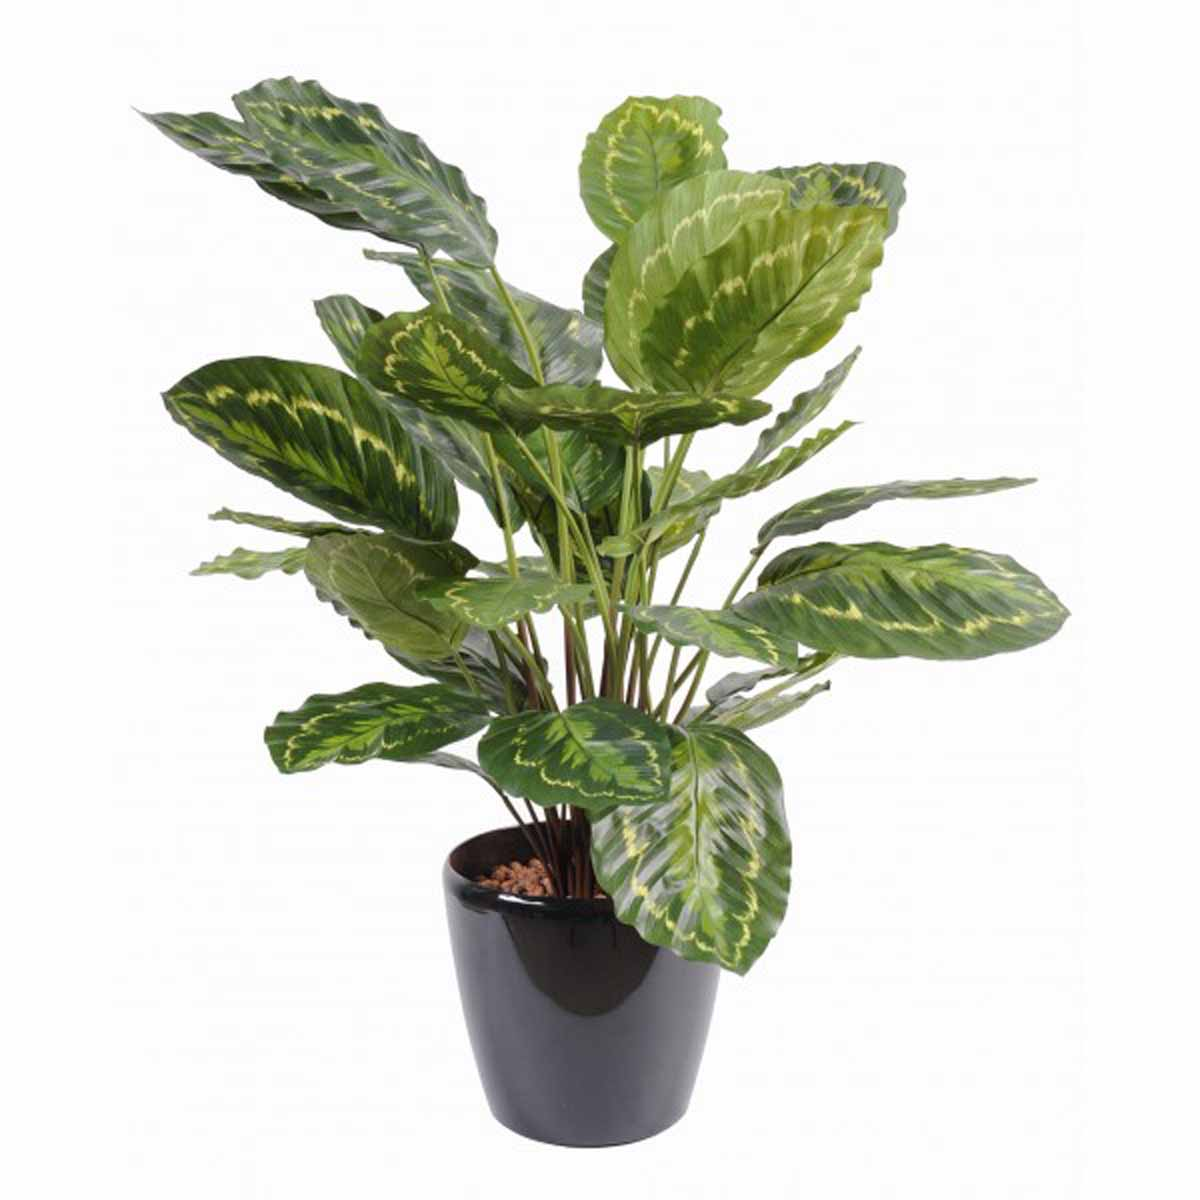 Plantes vertes cat gories decobac for Plantes vertes artificielles haut de gamme